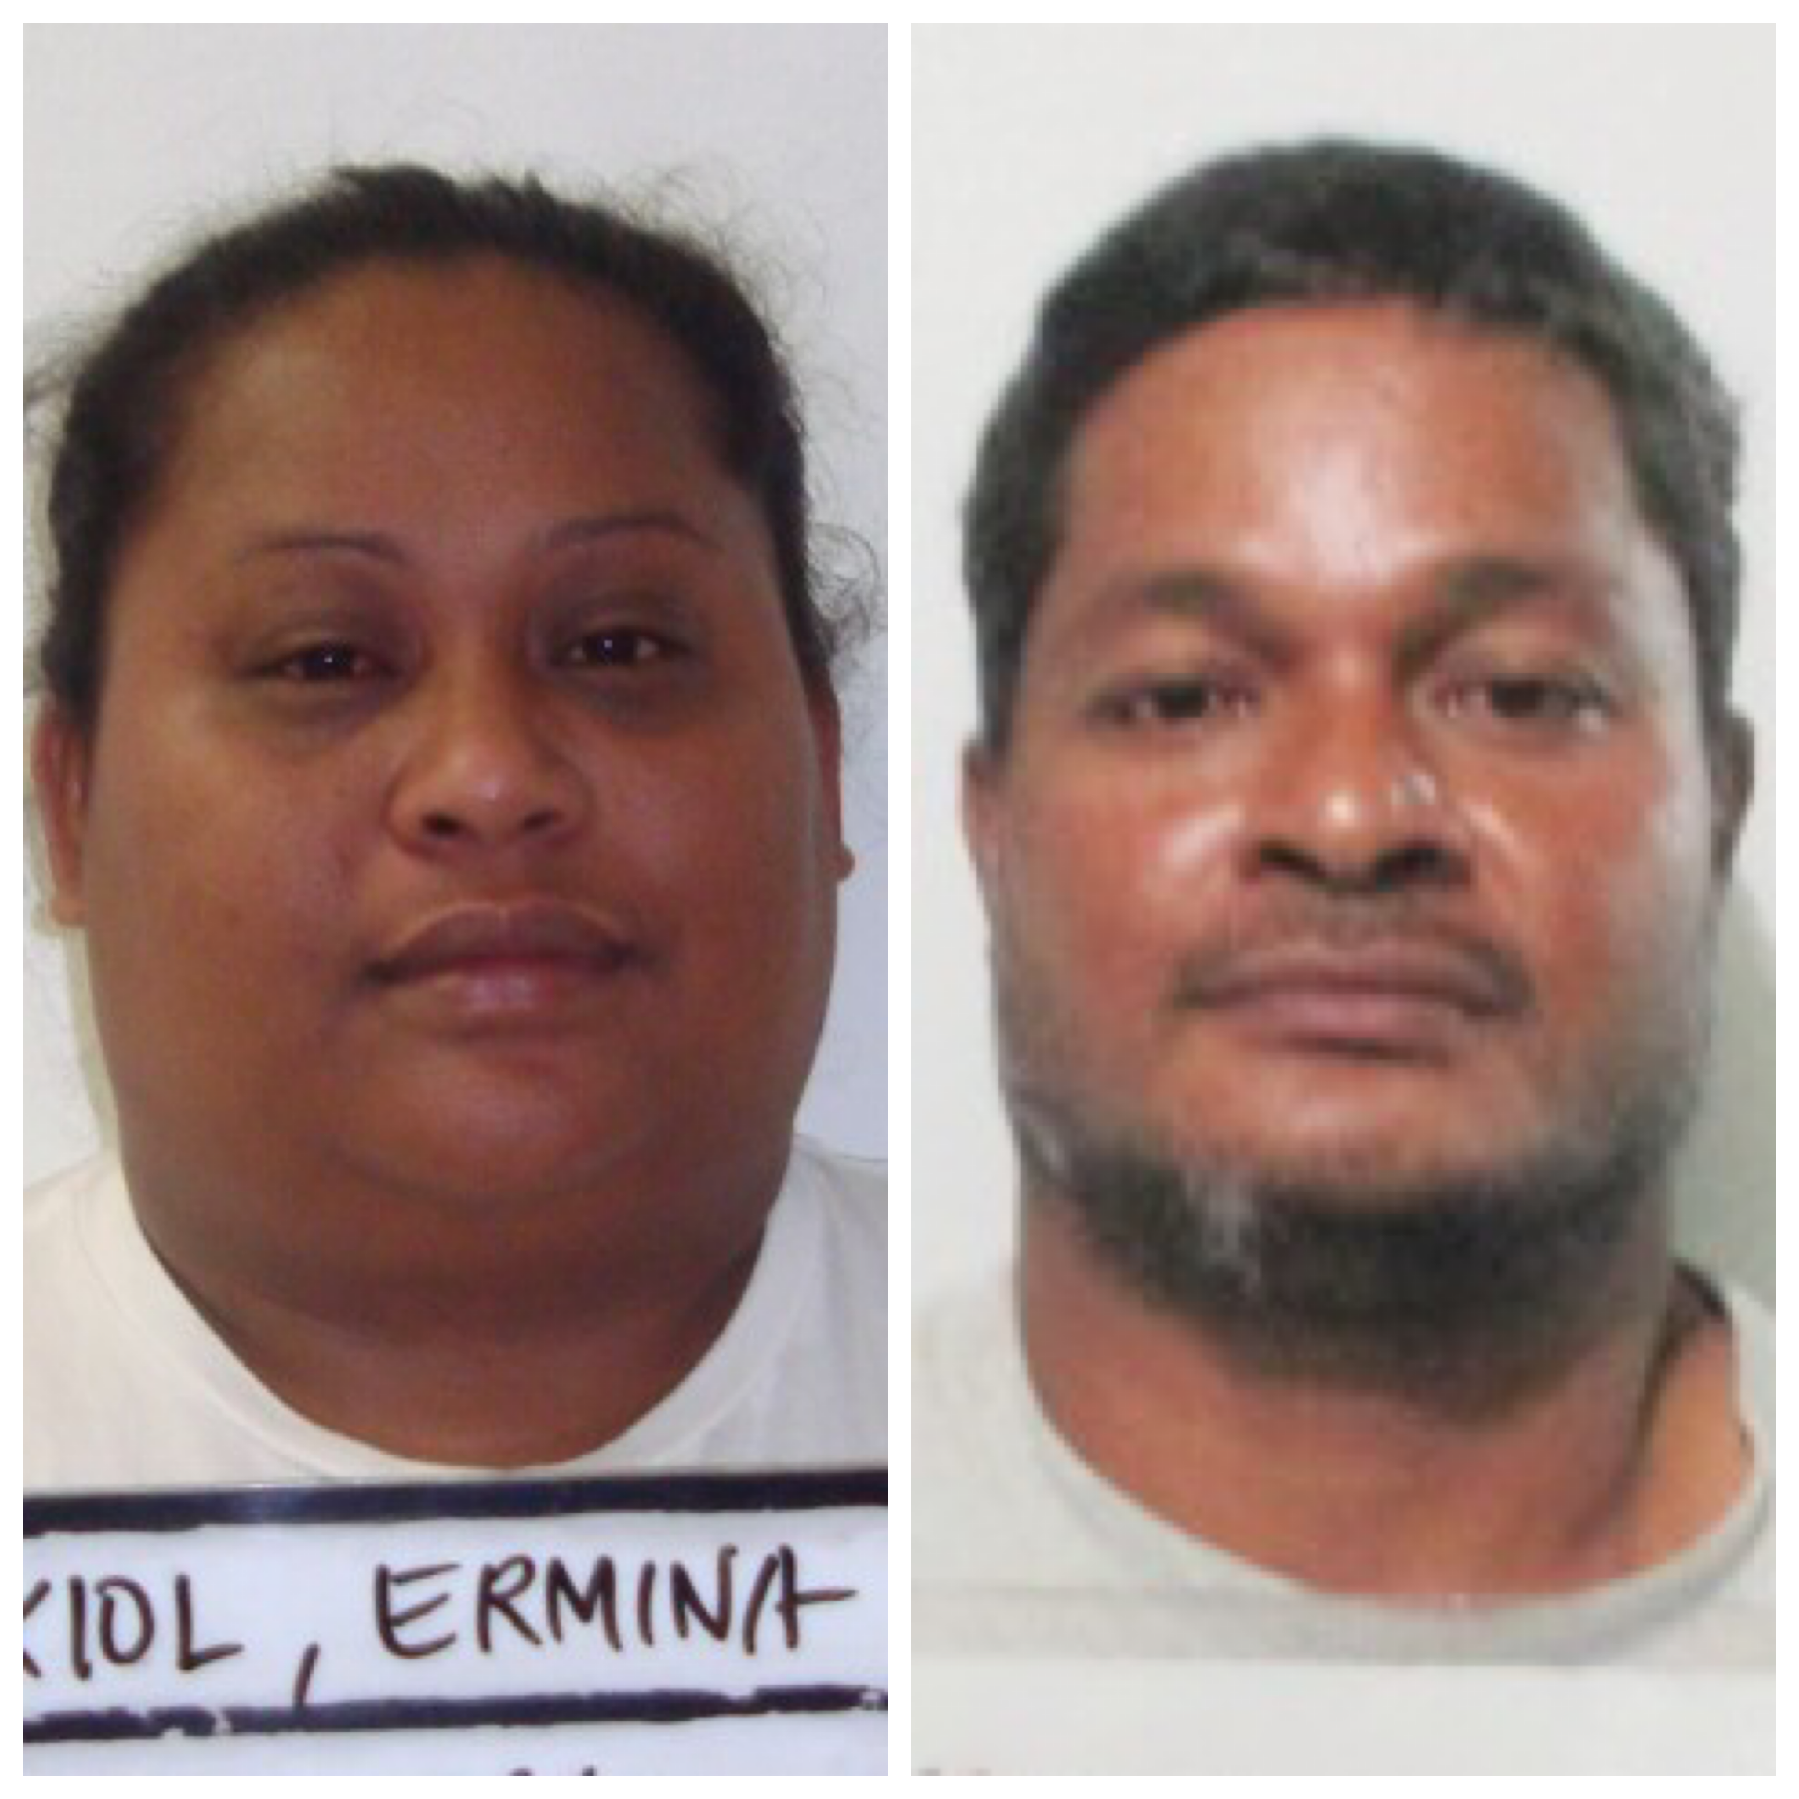 Ermina Sukiol and Reten Rousan charged in rape of 12-year-old girl